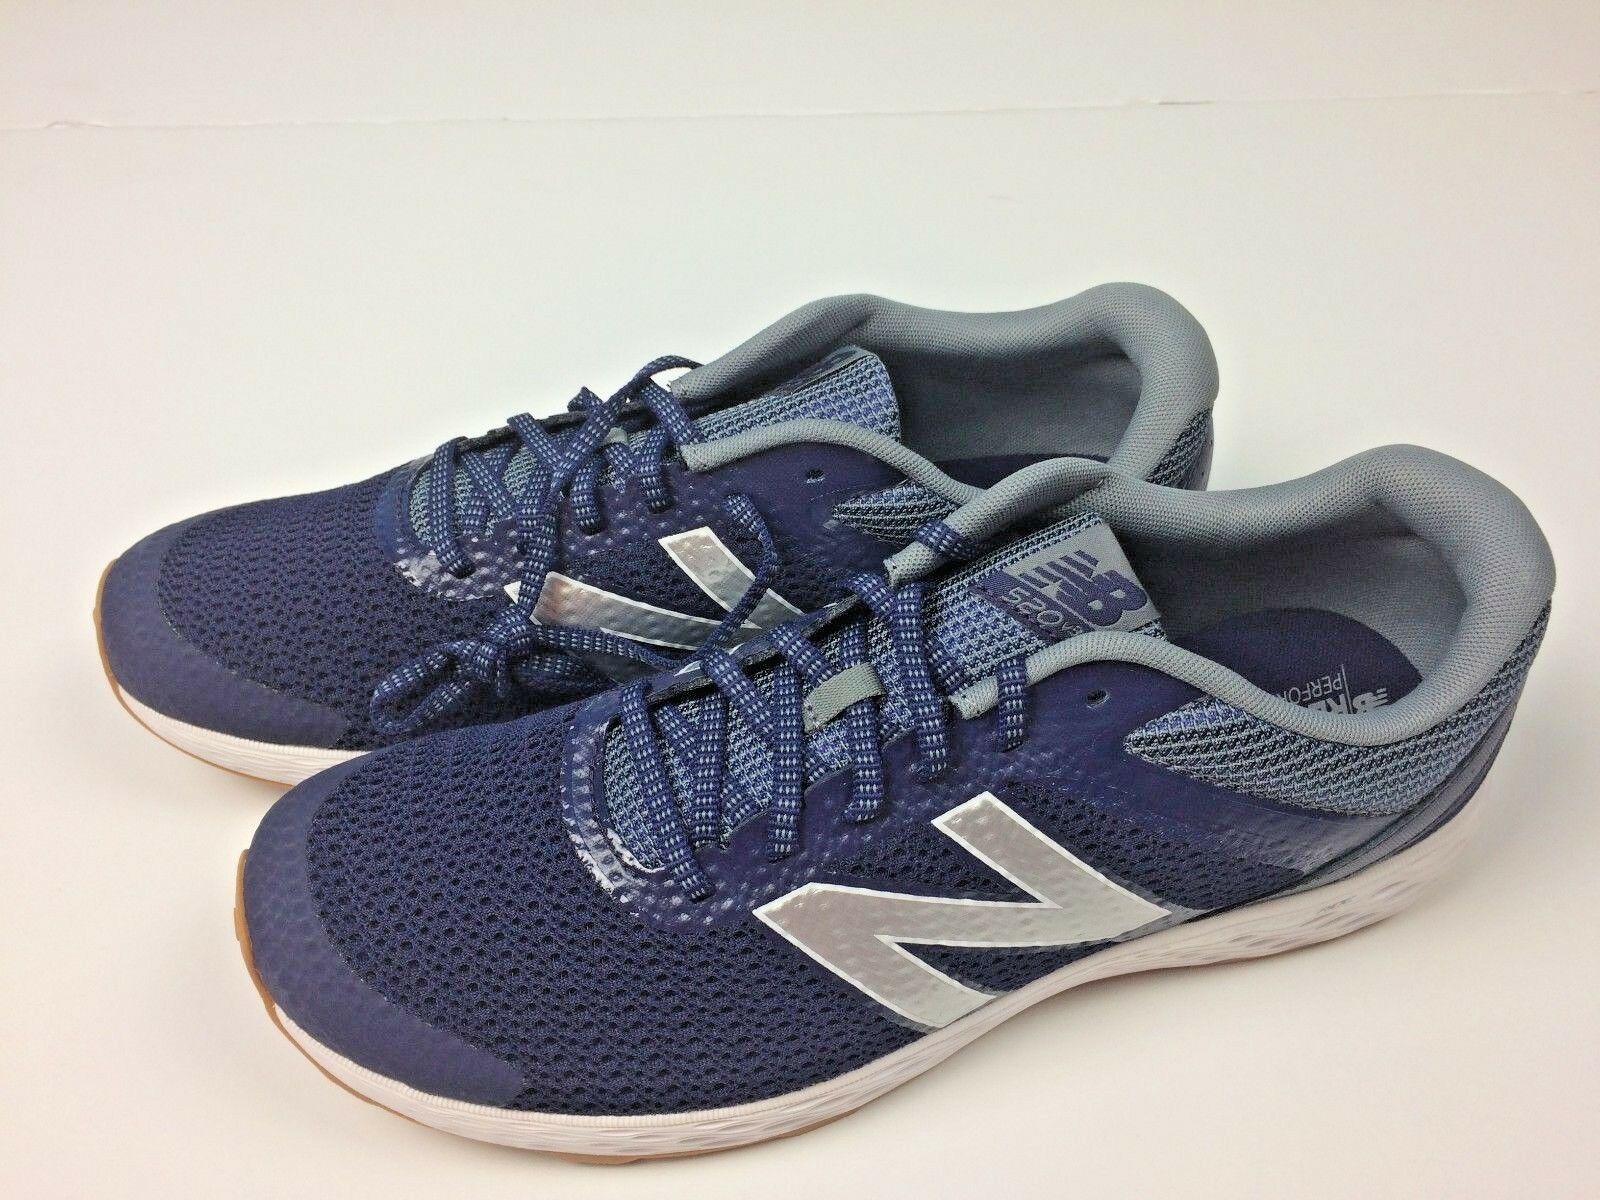 New Balance 520 Comfort Ride Men's Blue & White Running Shoes Sz 12